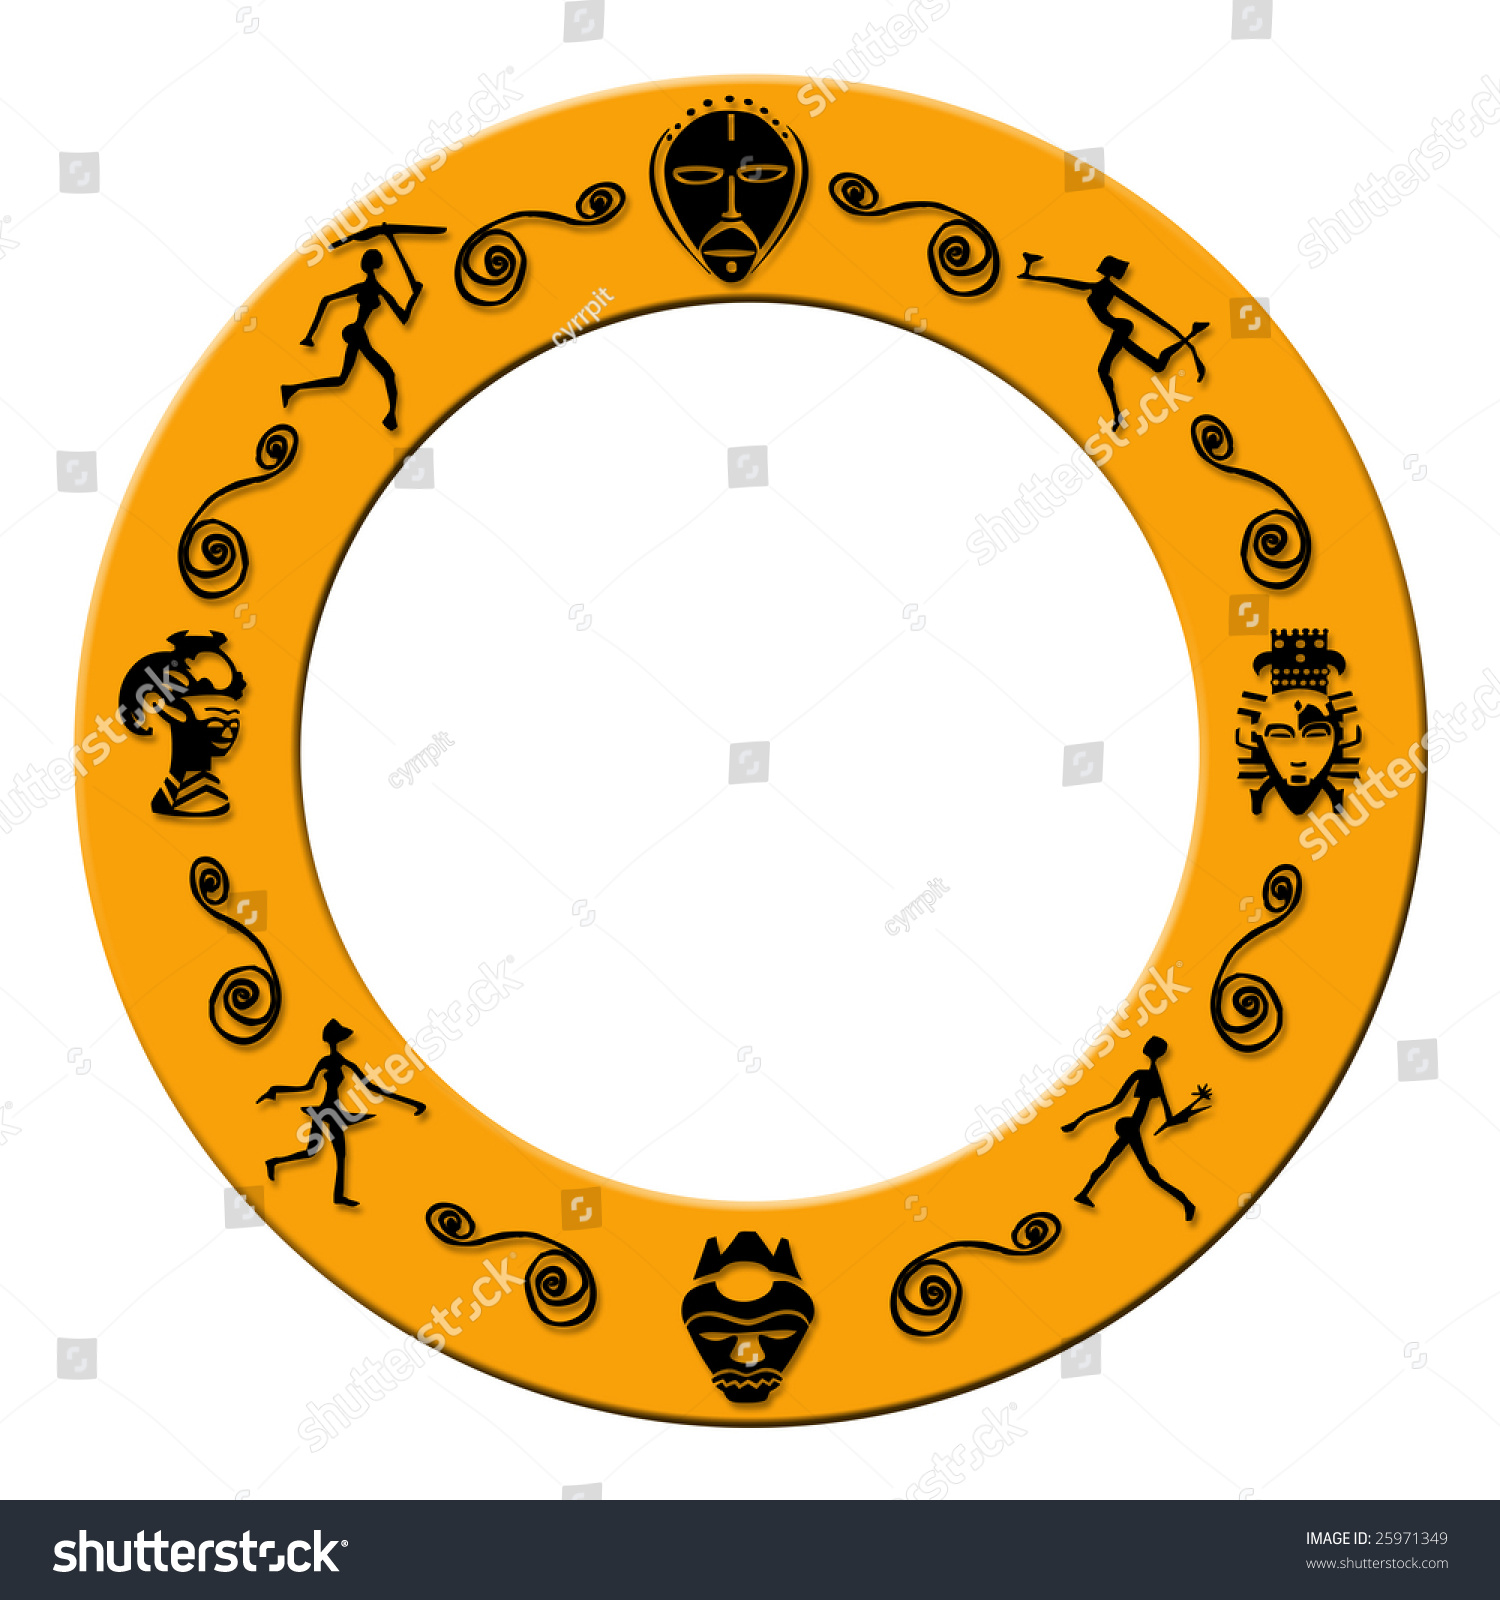 African signs and symbols choice image symbol and sign ideas orange colored round frame plastic african stock illustration orange colored round frame with plastic african signs buycottarizona